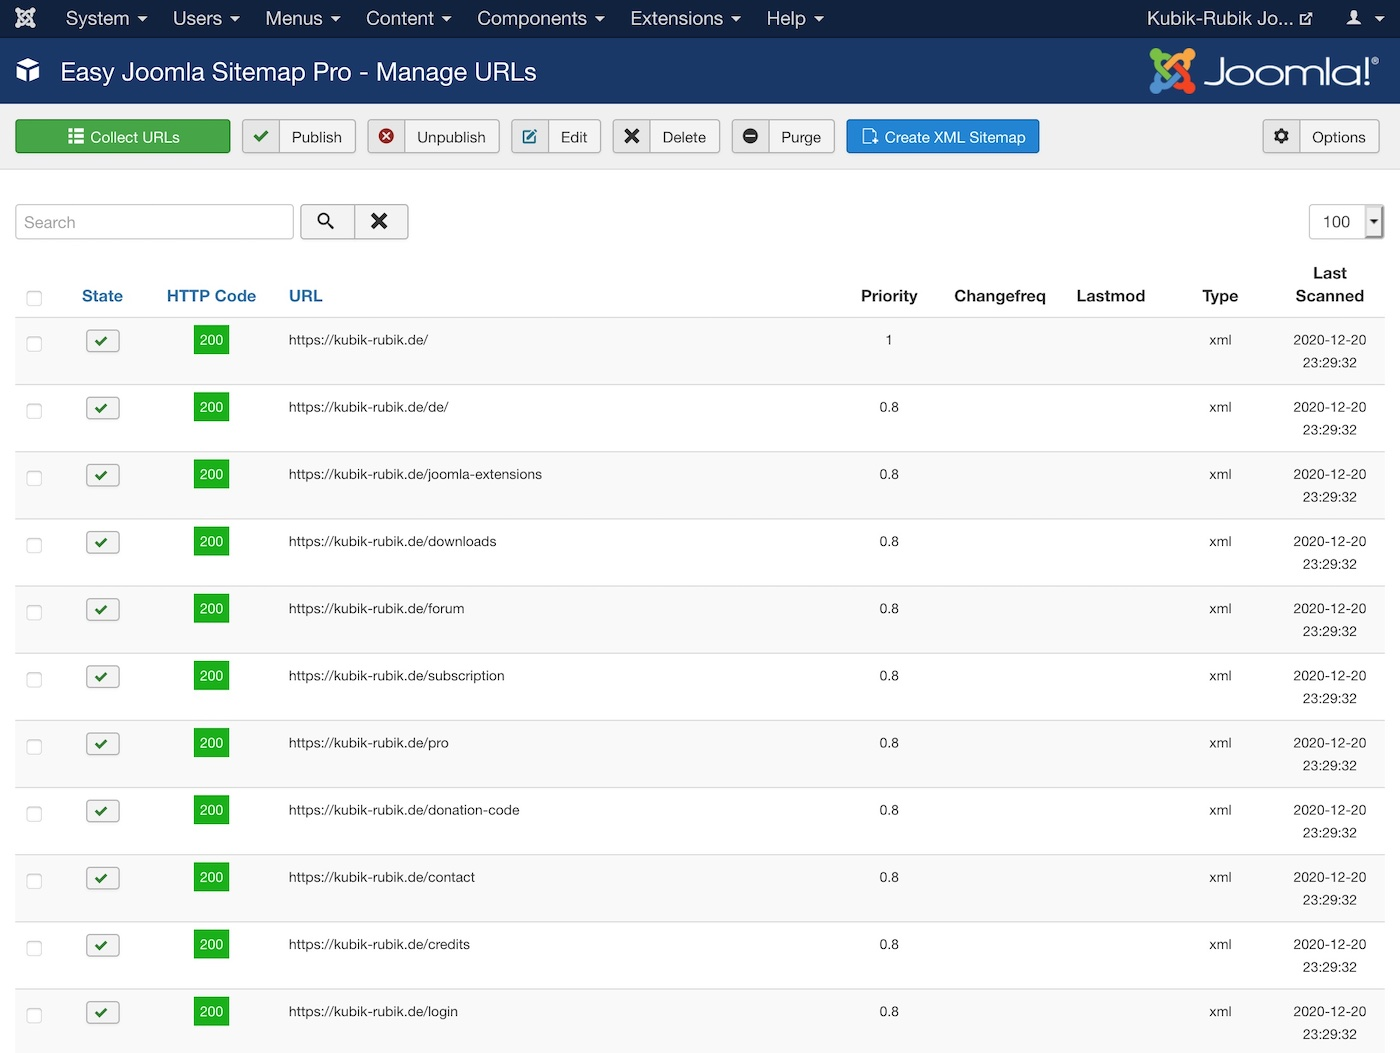 Easy Joomla Sitemap - Main Dashboard Overview